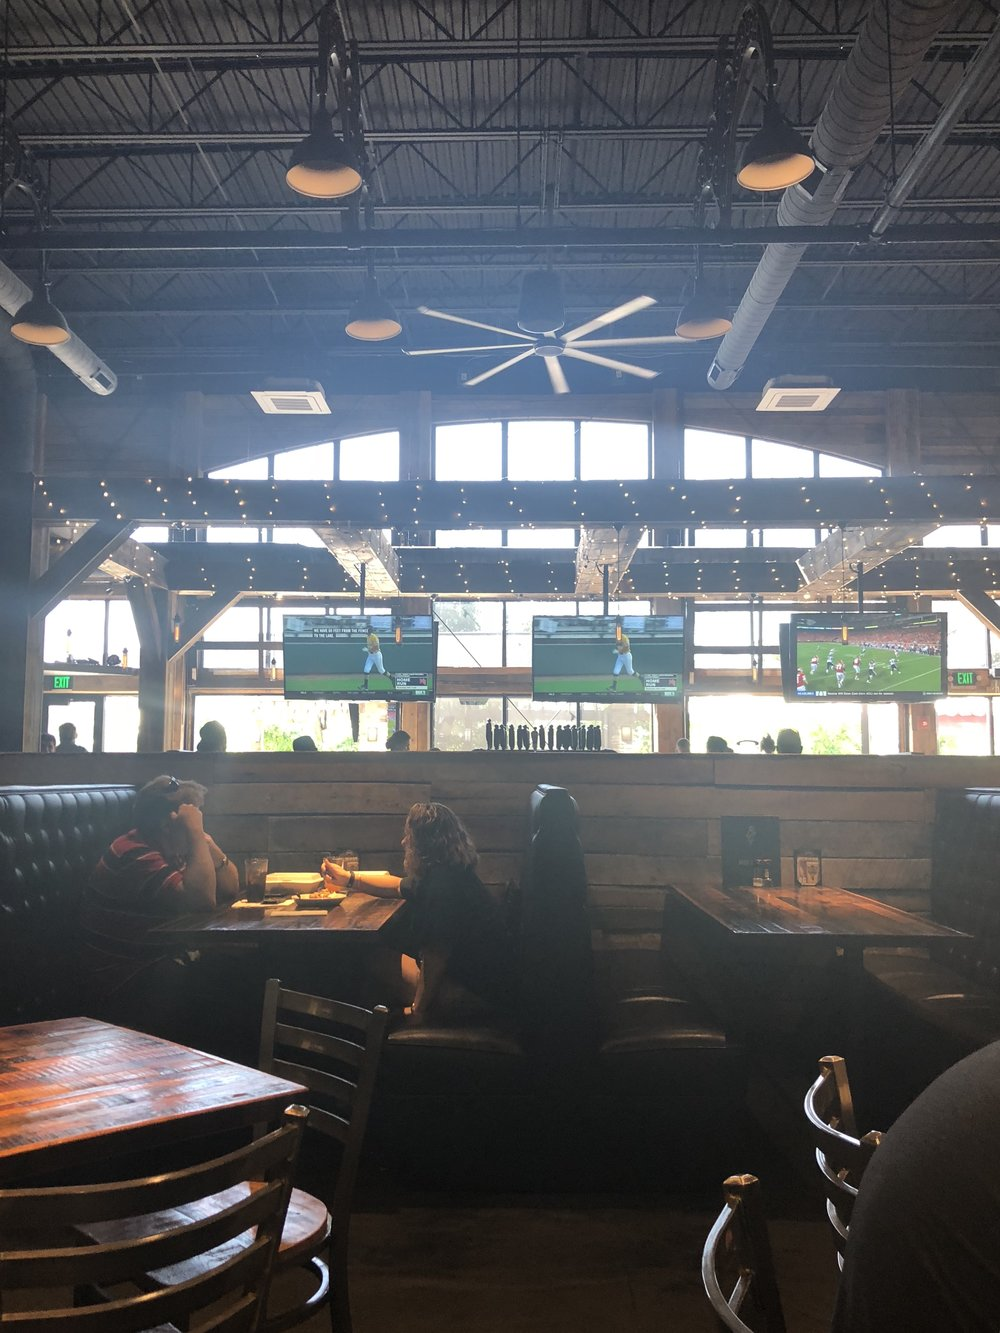 Large Bar area with plenty of TVs looking into the outdoor patio